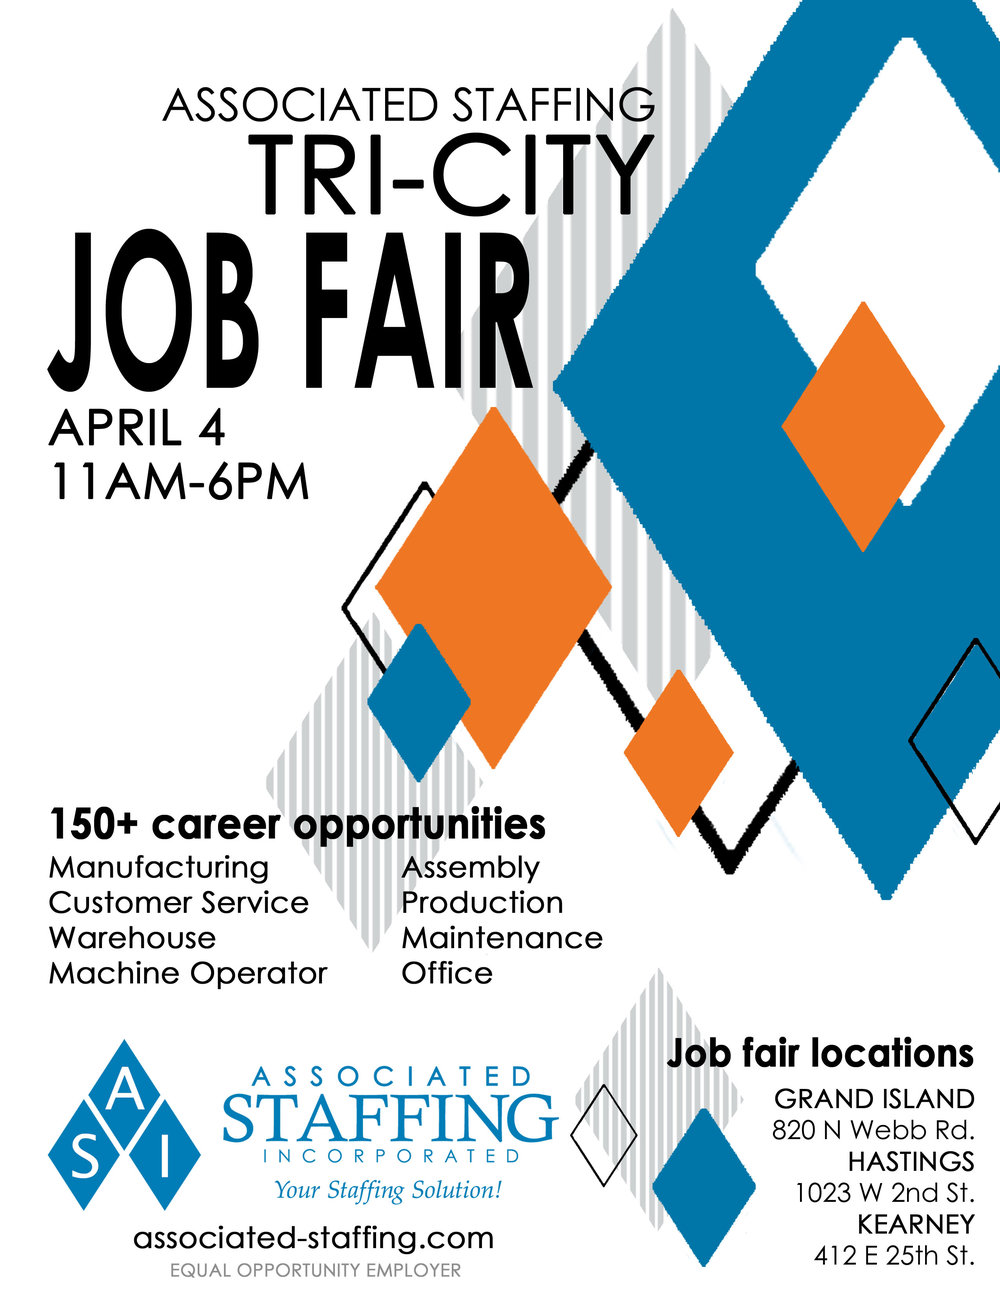 tri city job fair associated staffing inc offices or apply online at associated staffing com we look forward to seeing you soon job fair locations grand island 820 n webb rd